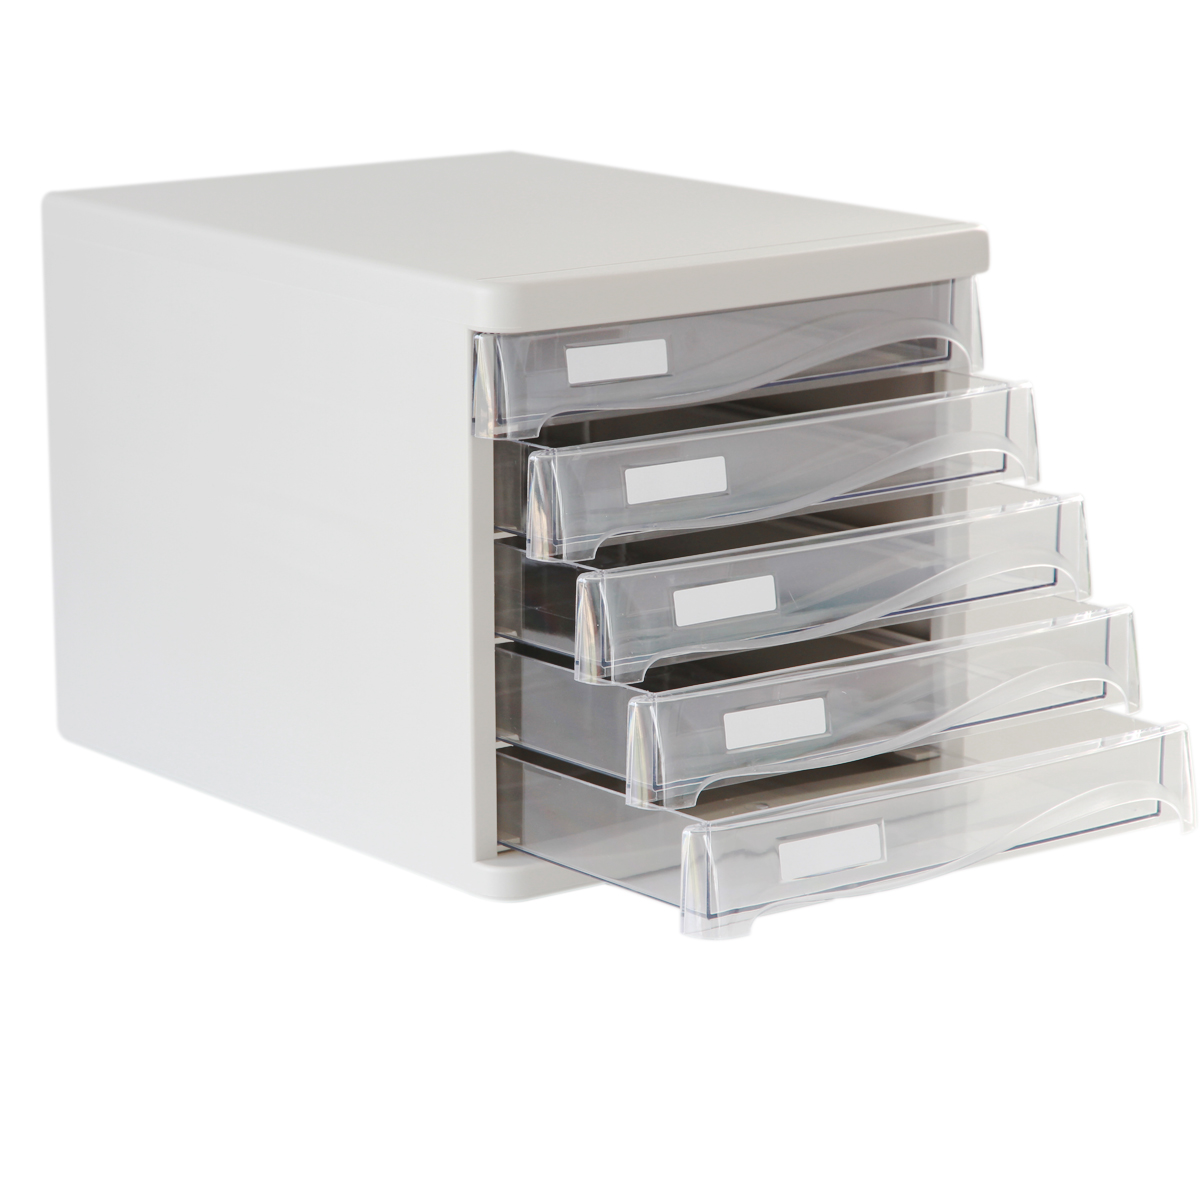 File cabinet office five transparent plastic drawer storage ...